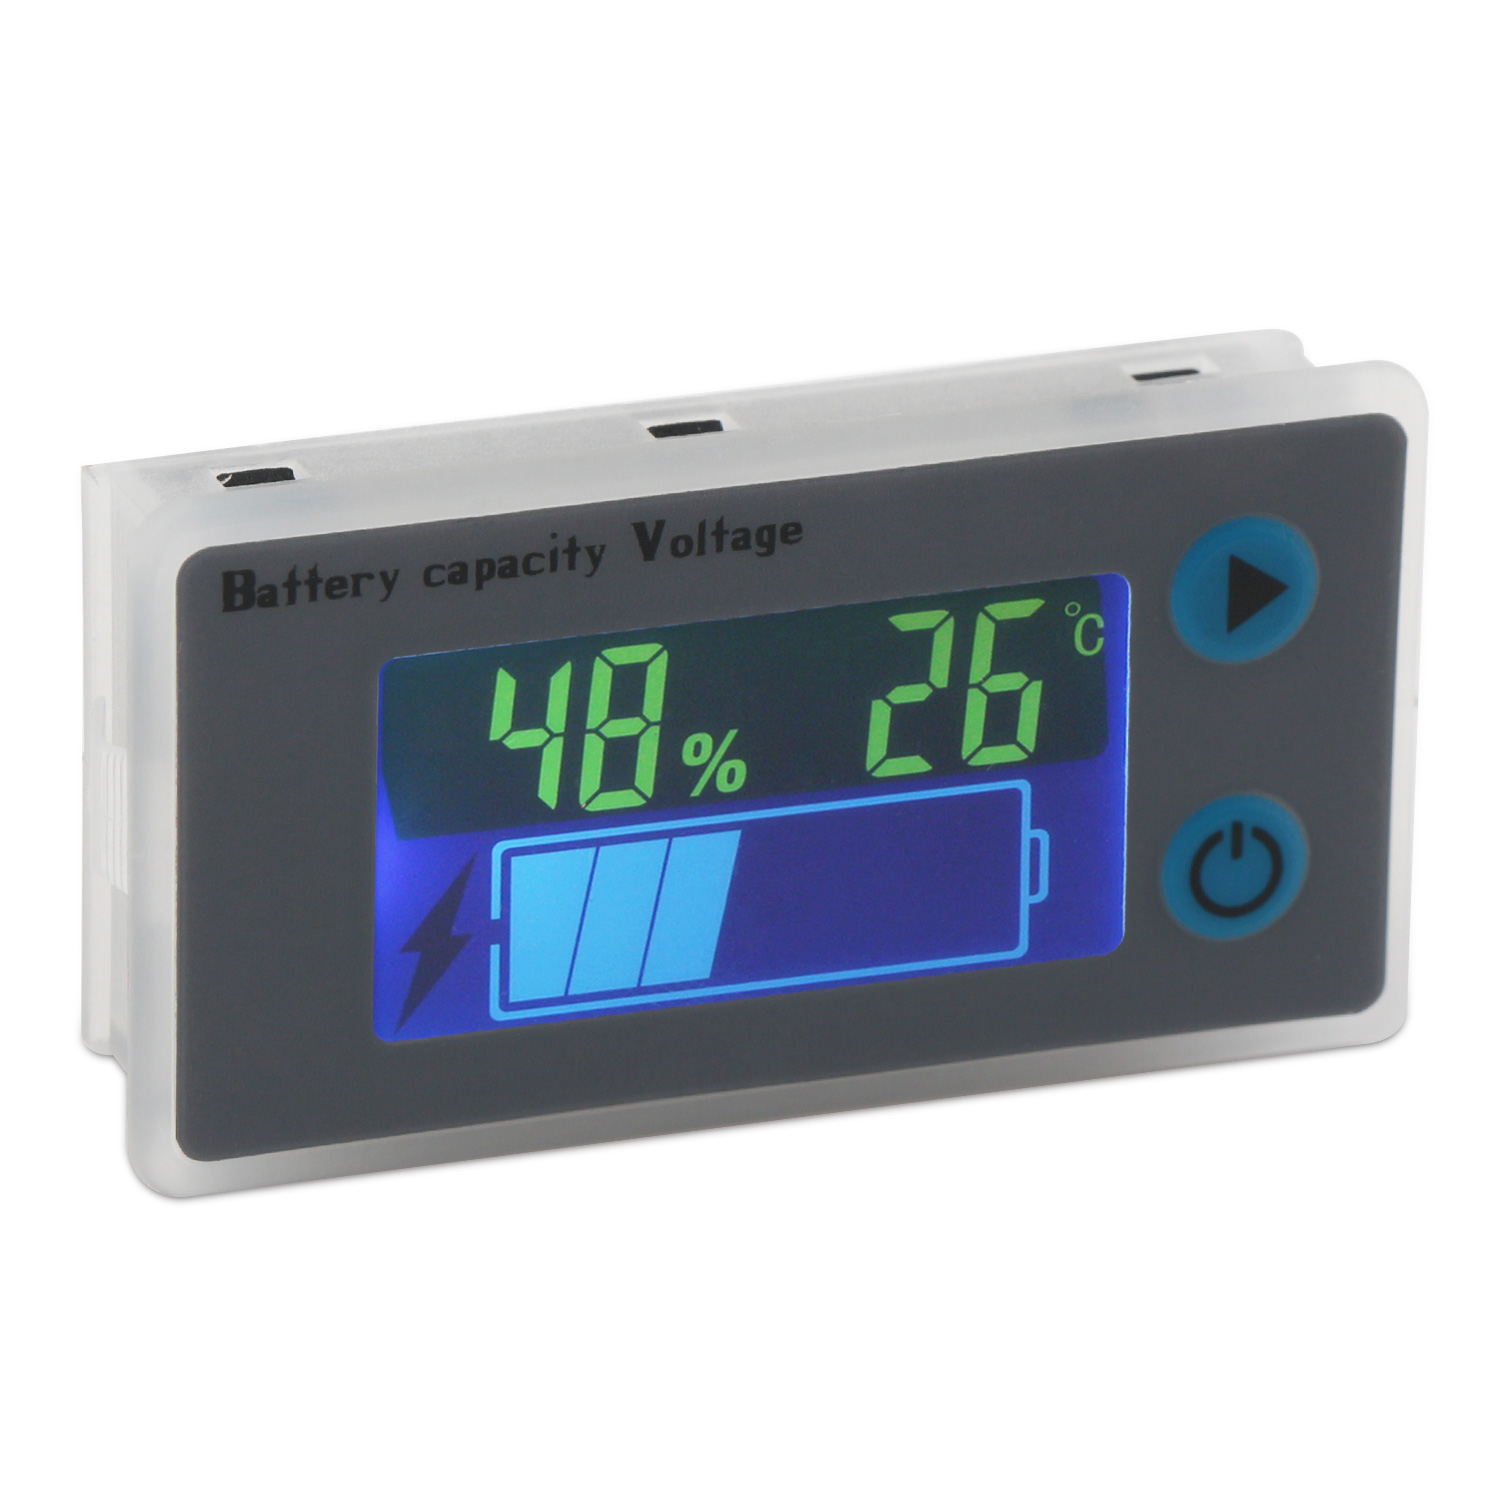 LCD Display Battery Capacity Indicator Universal Voltmeter Voltage Tester Monito